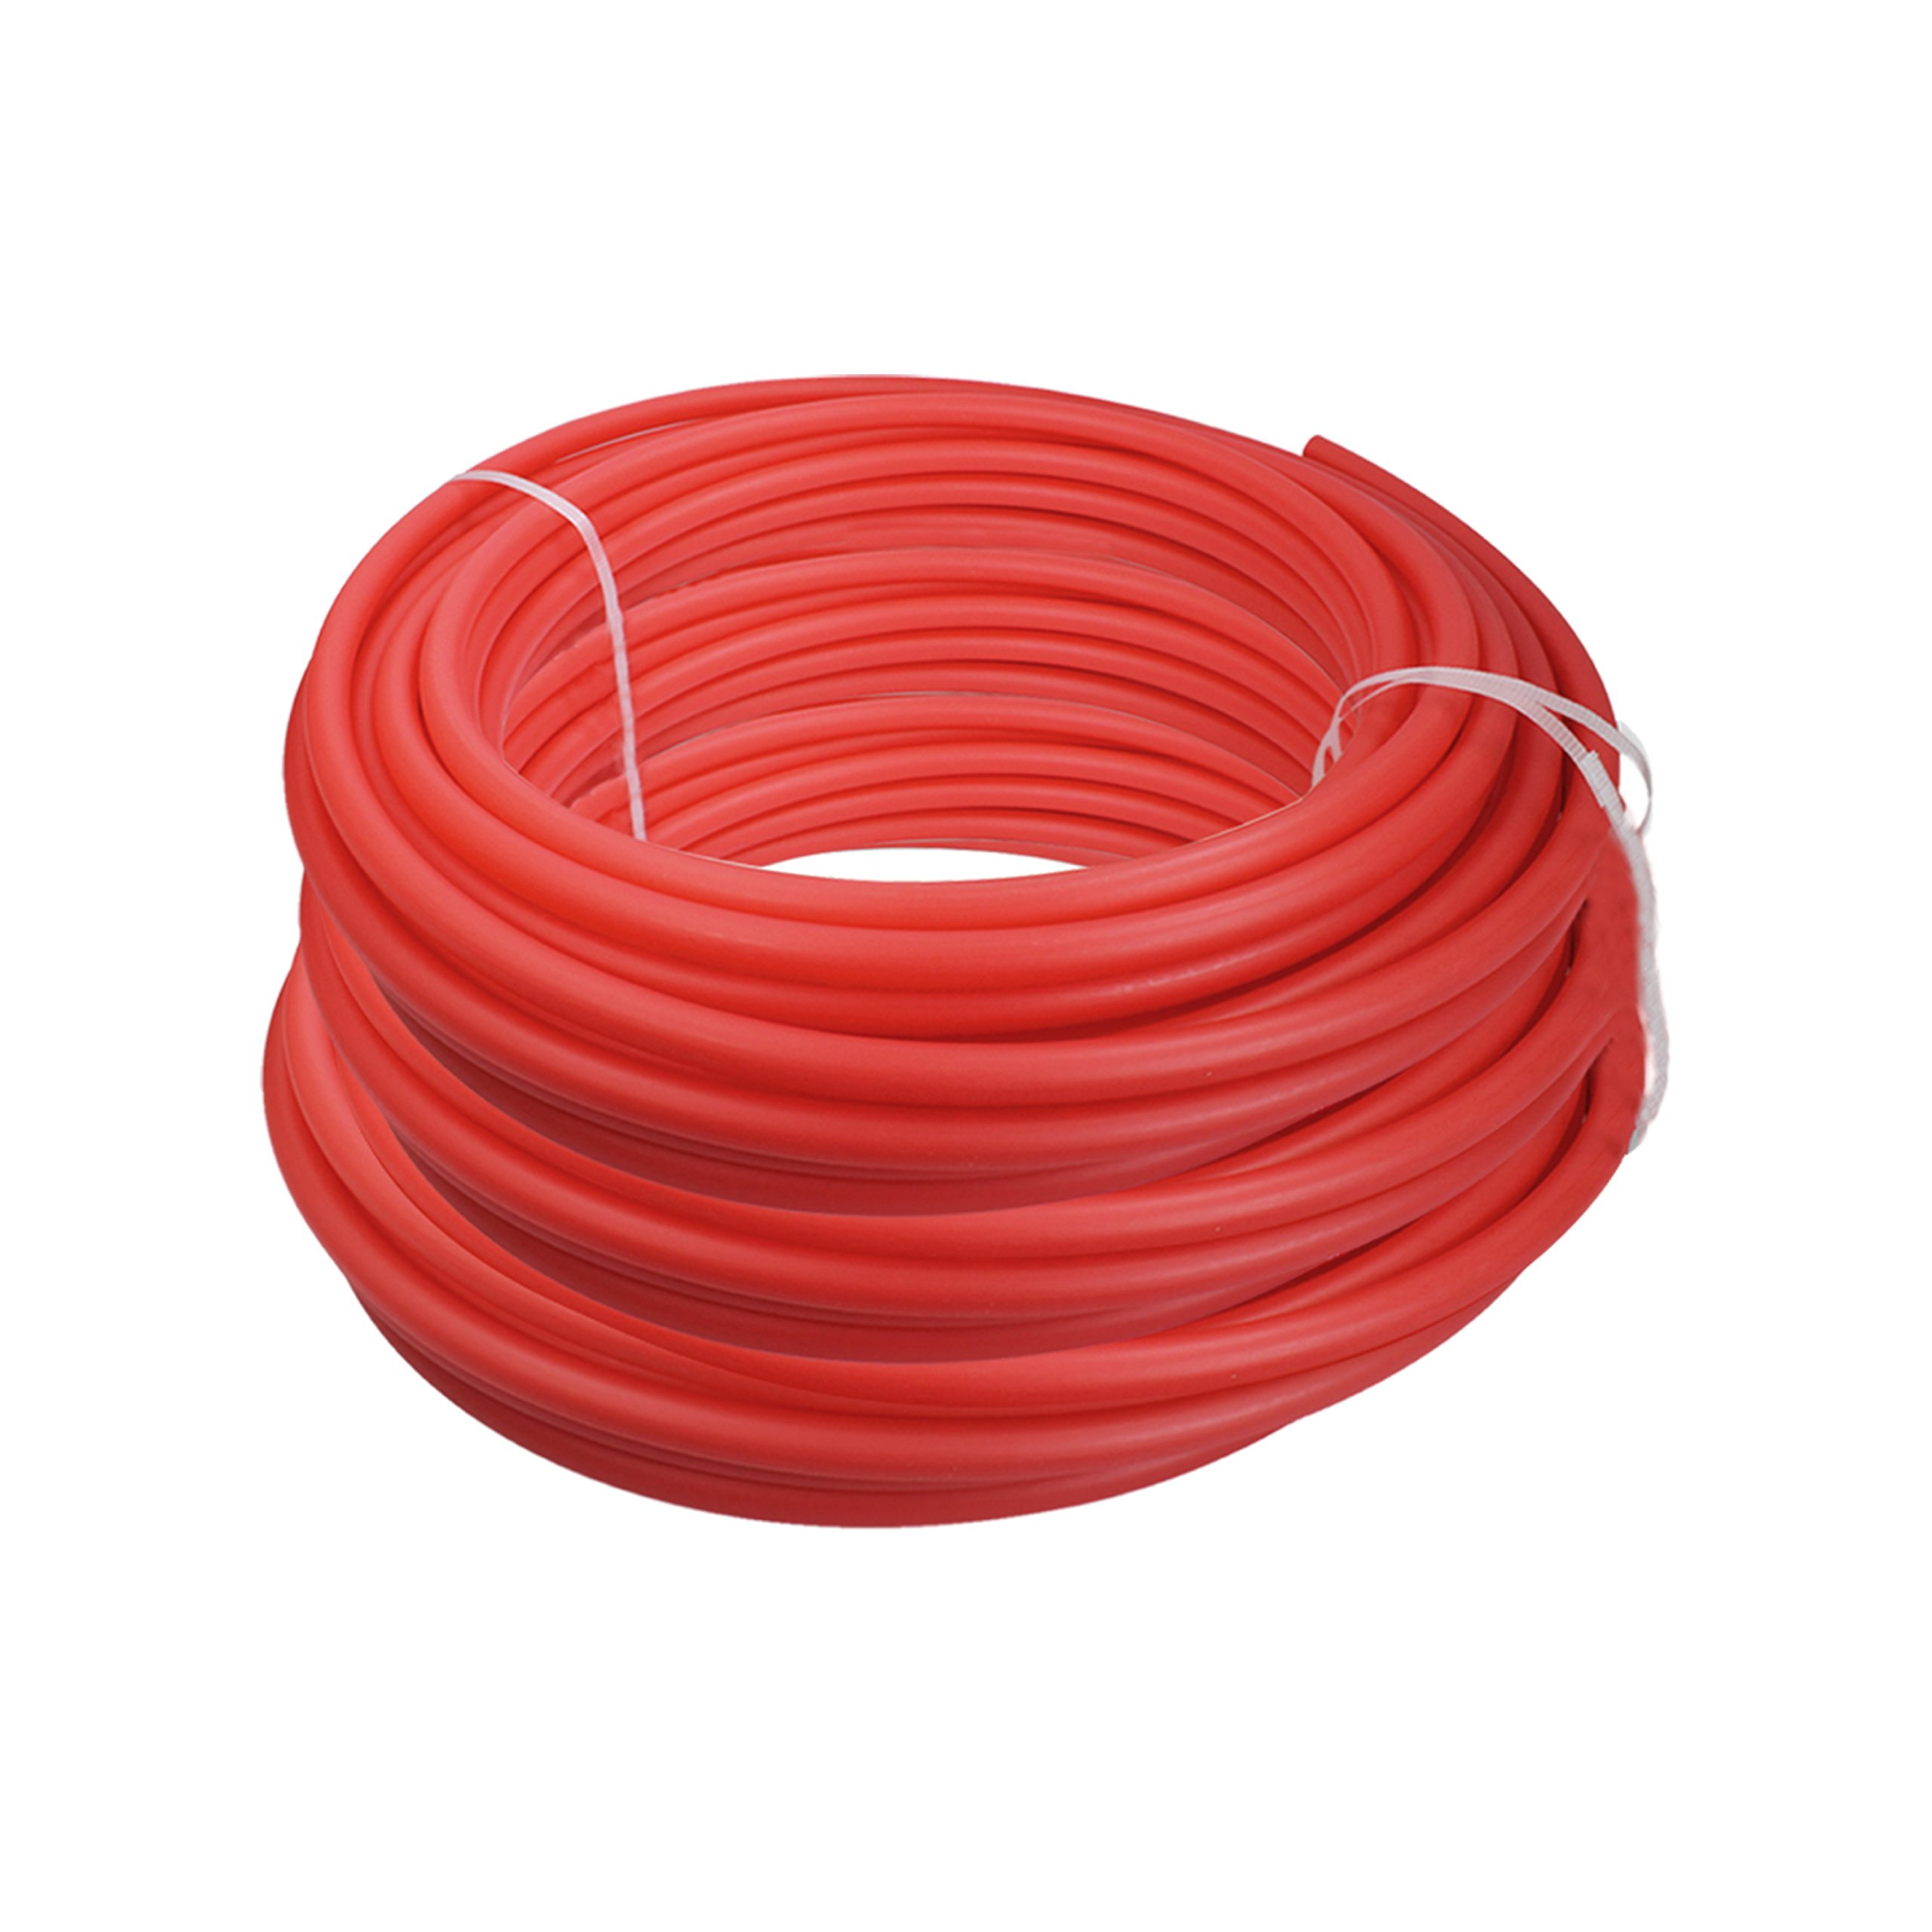 Cheap Greenhouse Heating Systems Find Wiring Get Quotations Pexflow Pfr R121200 Oxygen Barrier Pex Tubing For Hydronic Radiant Floor 1